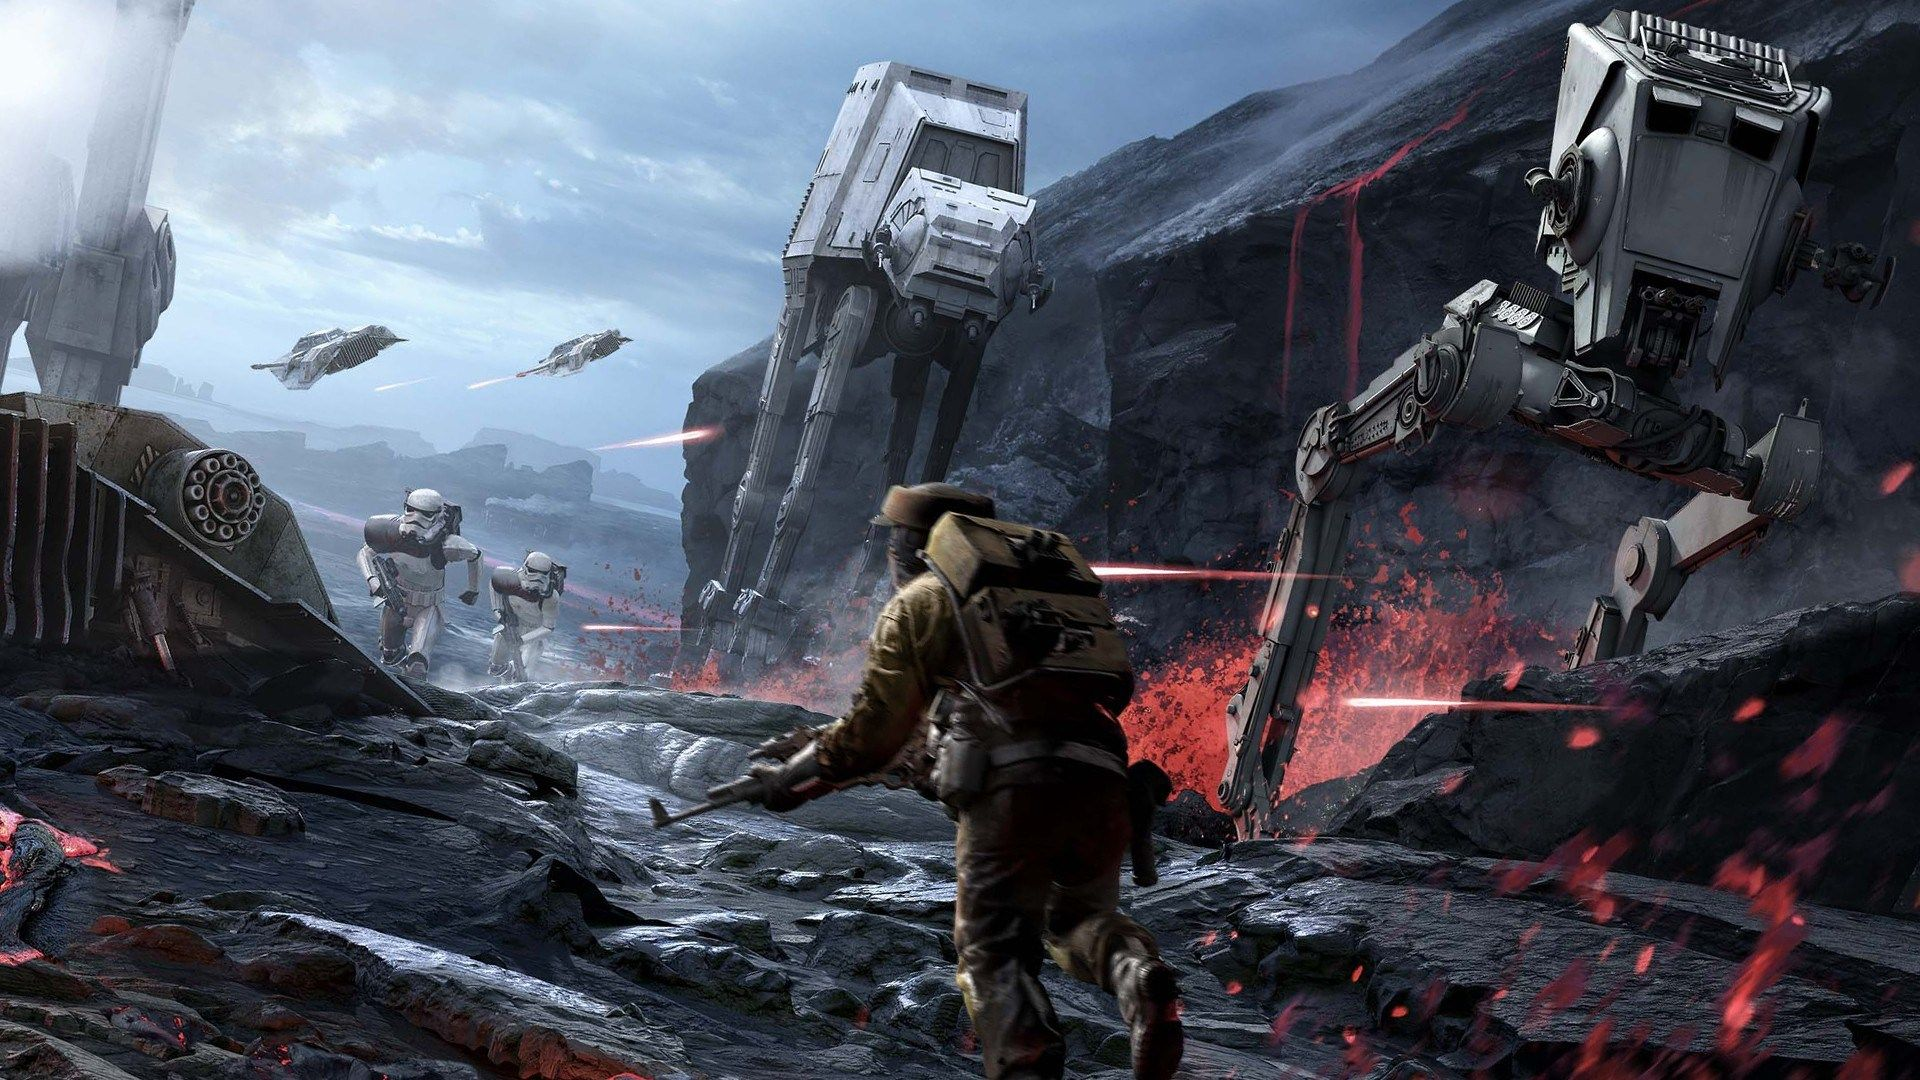 Star Wars Battlefront 2015 Themed Summer Nail 1920x1080 Star Wars Wallpaper Star Wars Awesome Star Wars Poster